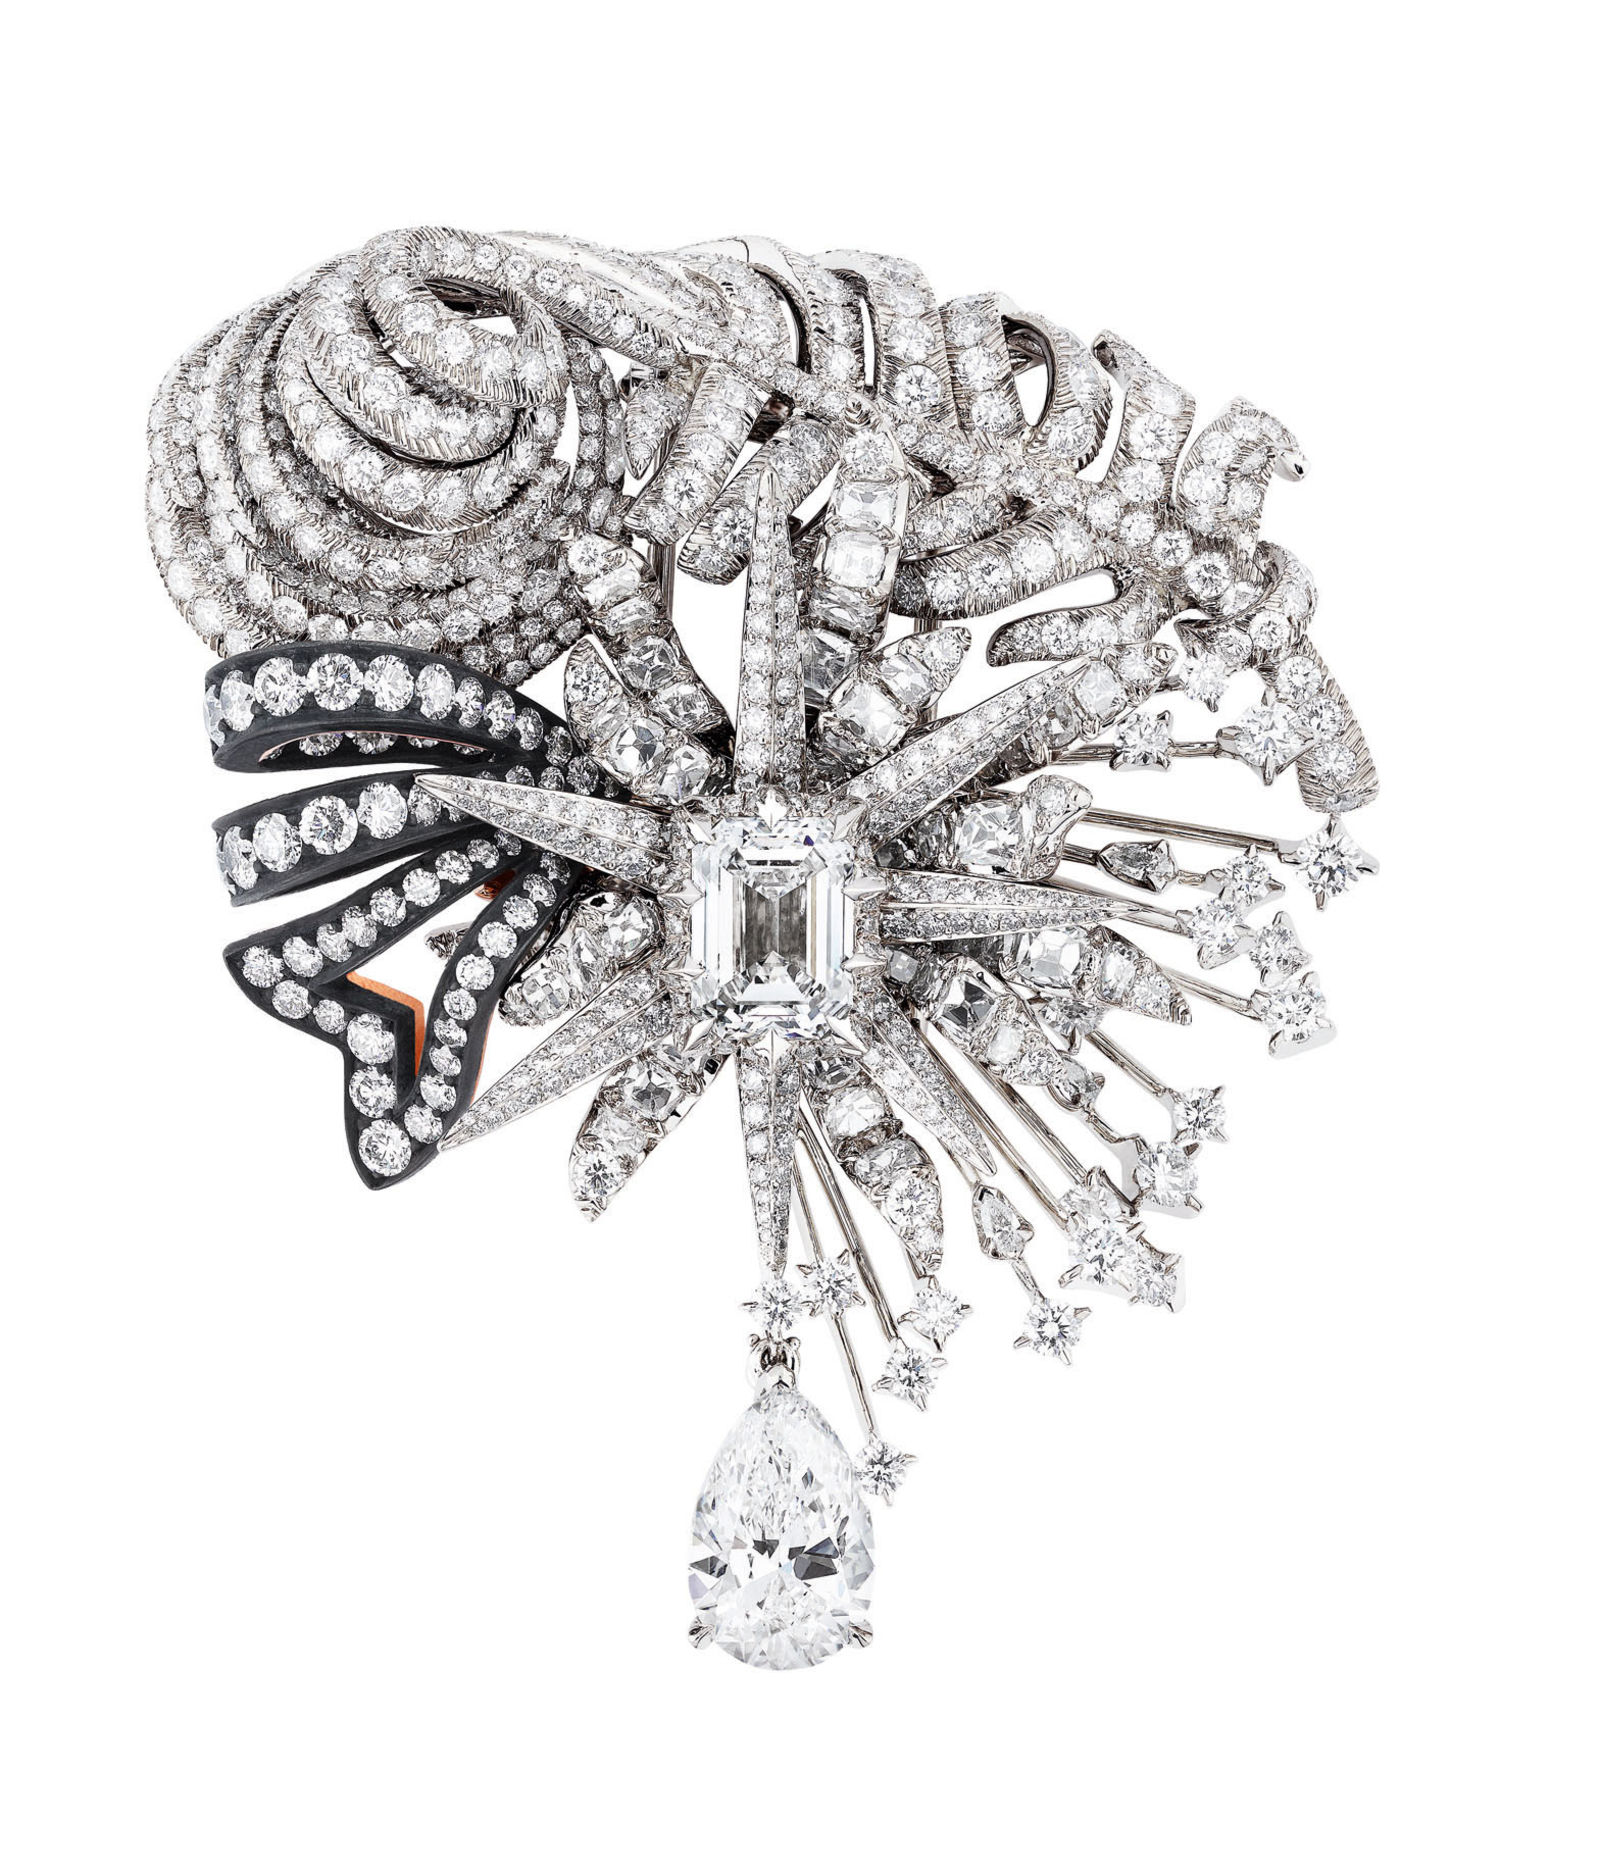 Dior Joaillerie (Image 2)